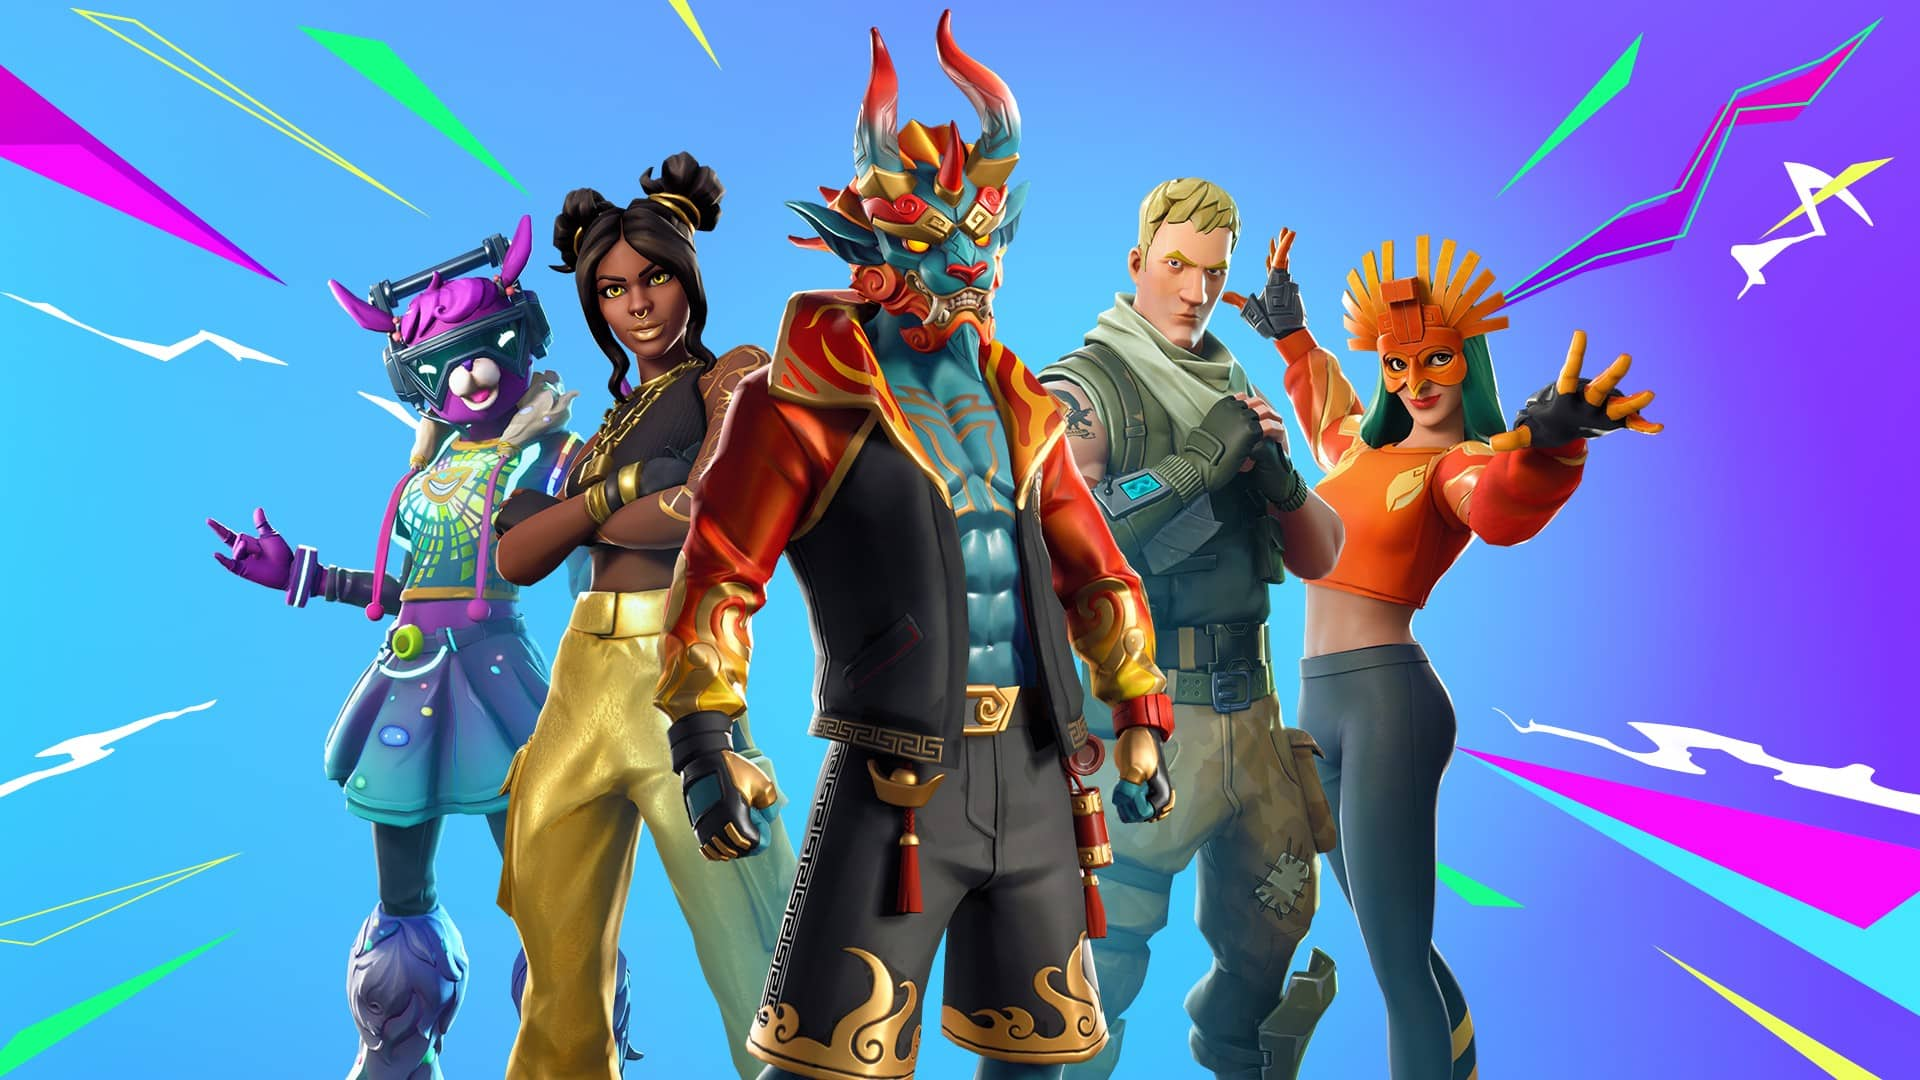 Fortnite Next Gen Runs At 4k 60fps On Ps5 And Xbox Series X Supports Dualsense